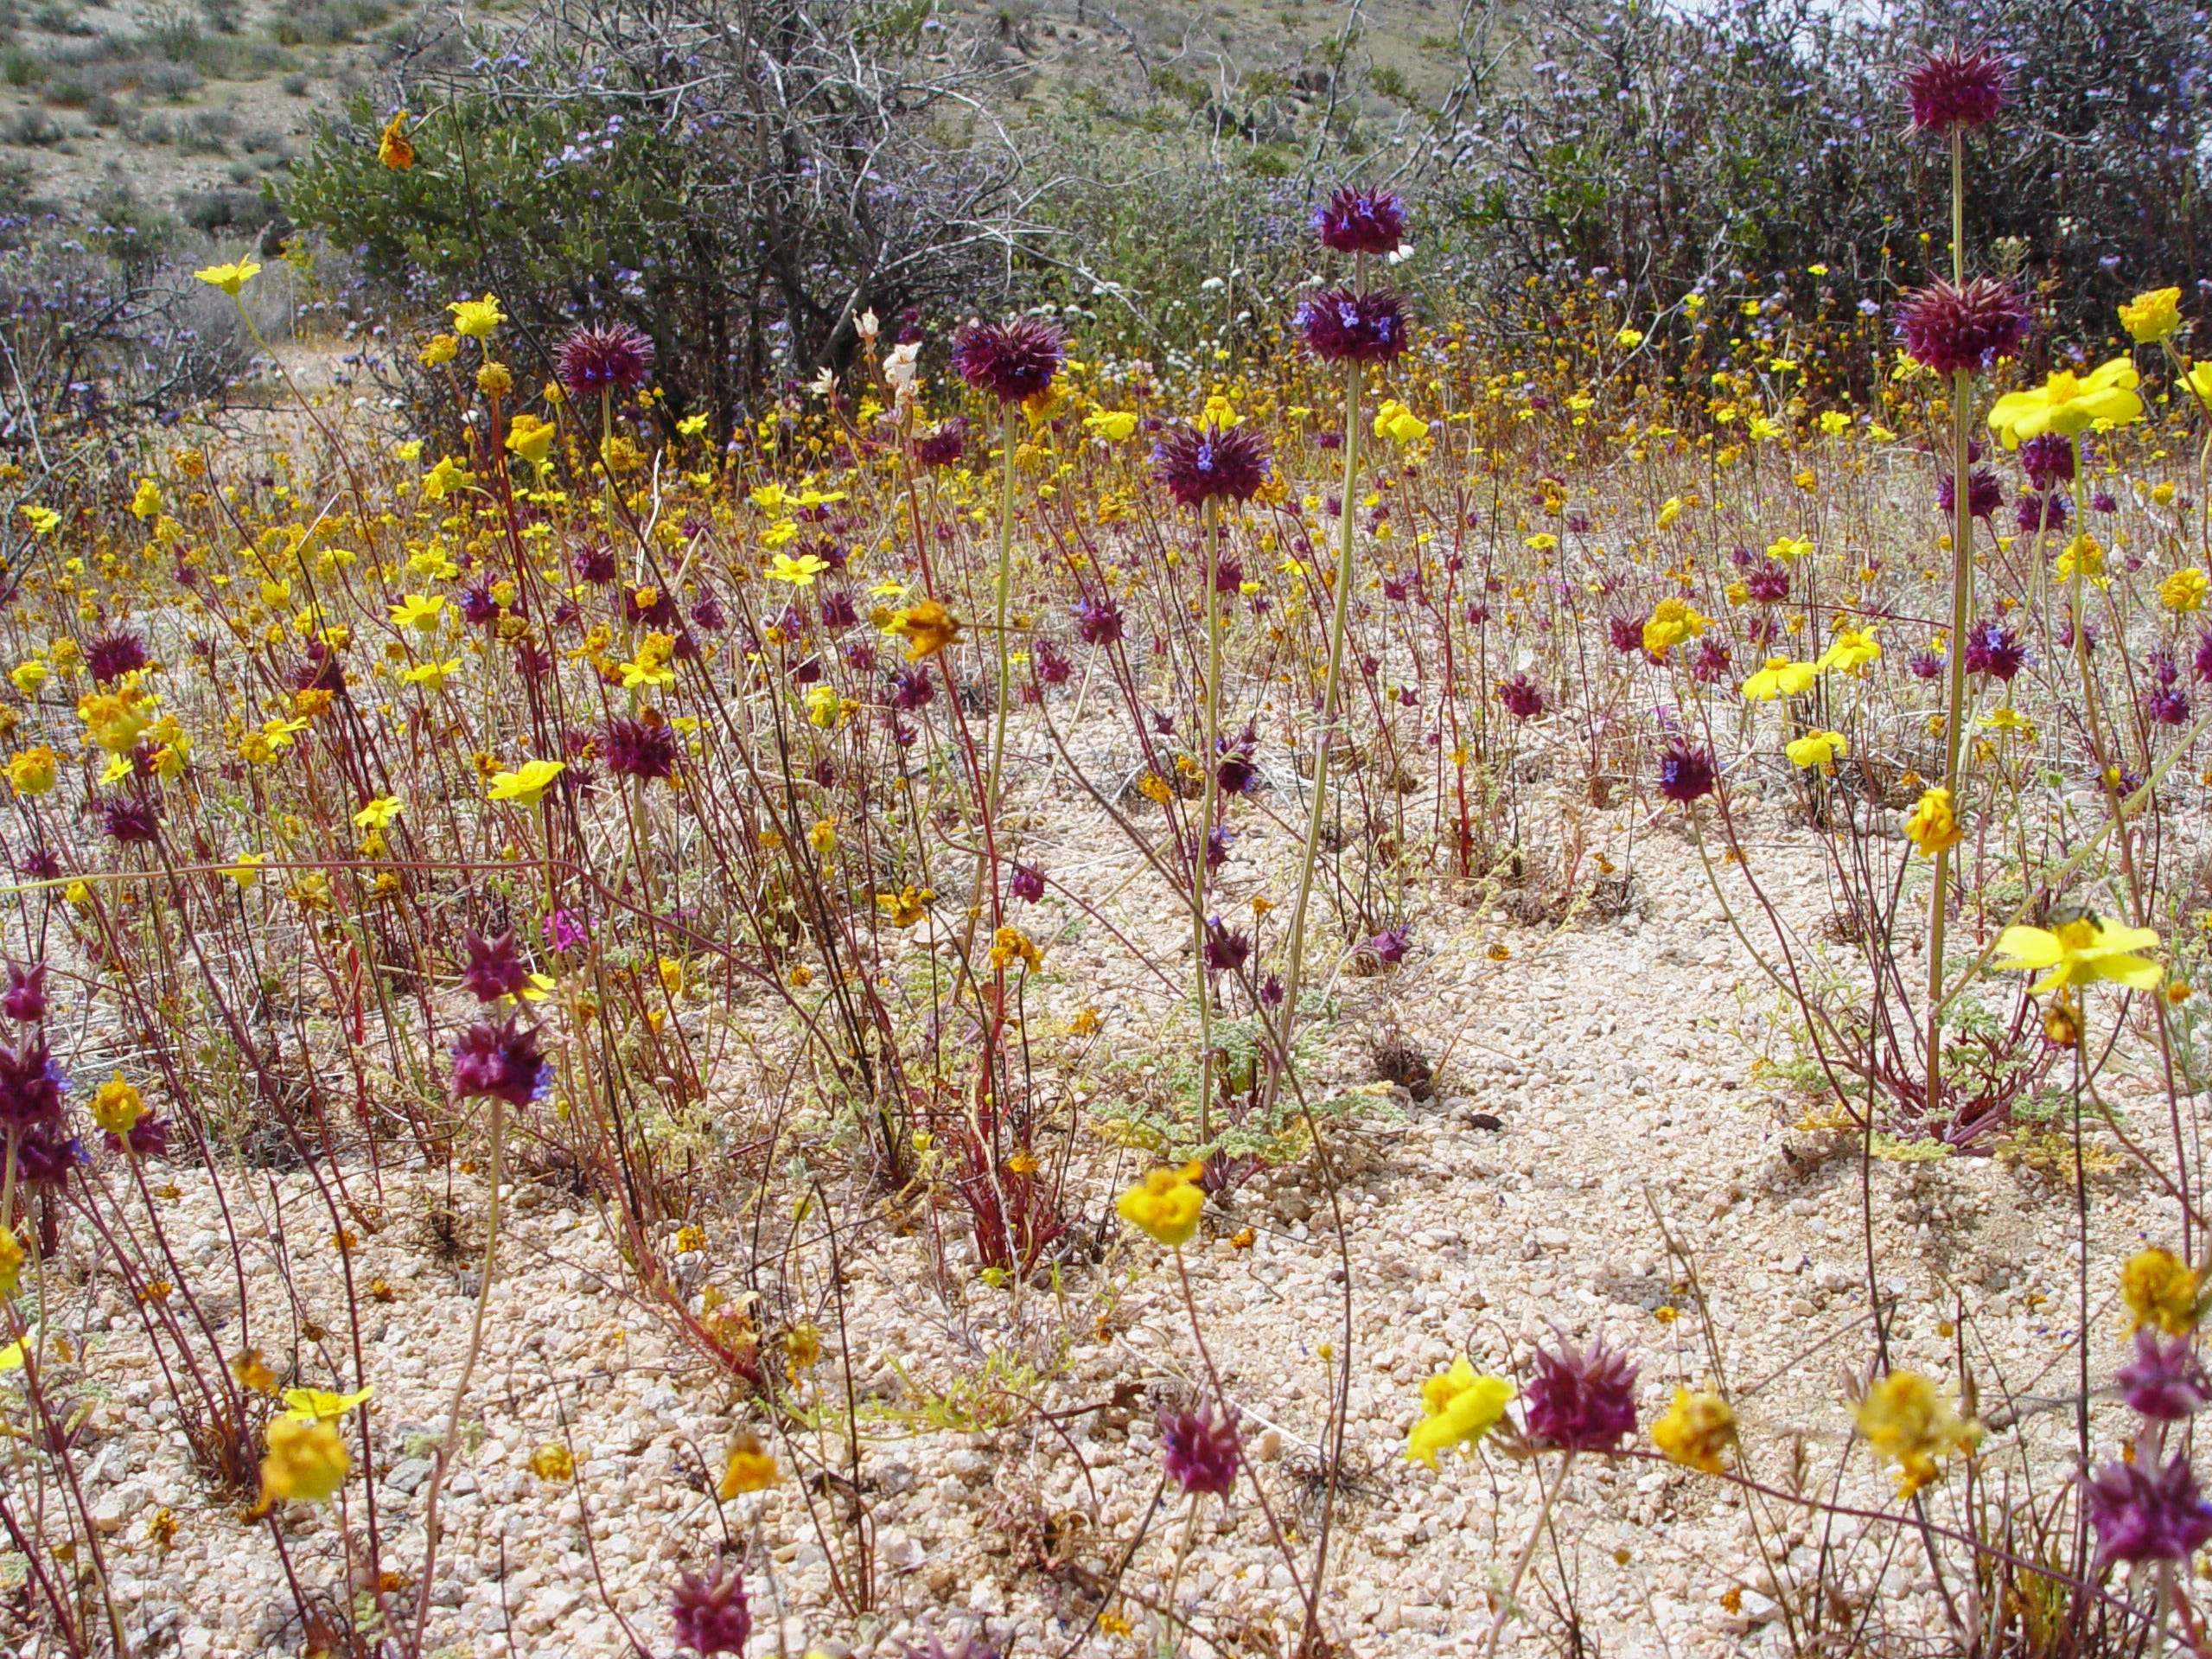 These unusual annual coreopsis blend with chia in a sandy dry wash with no disturbance after a heavy rain year.  Seed probably washed in with flood and produced such density.